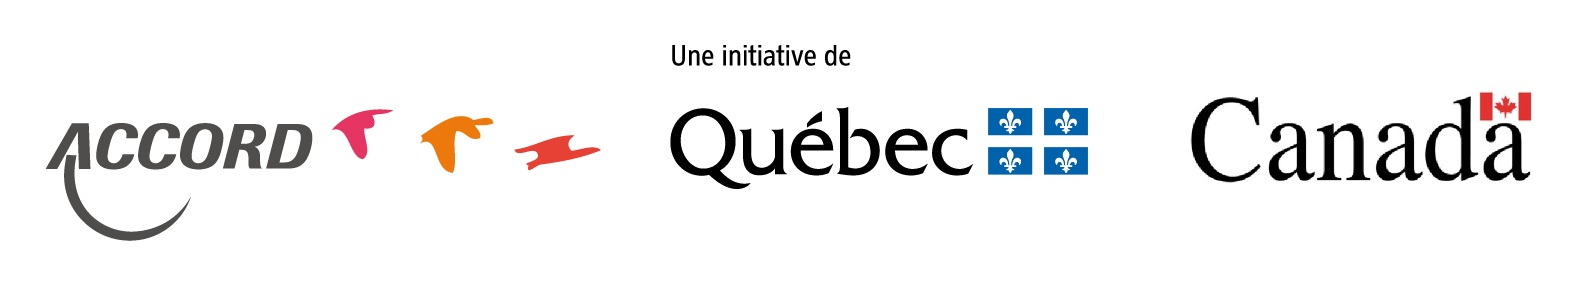 ACCORD_QUEBEC_CANADA_COUL.jpg